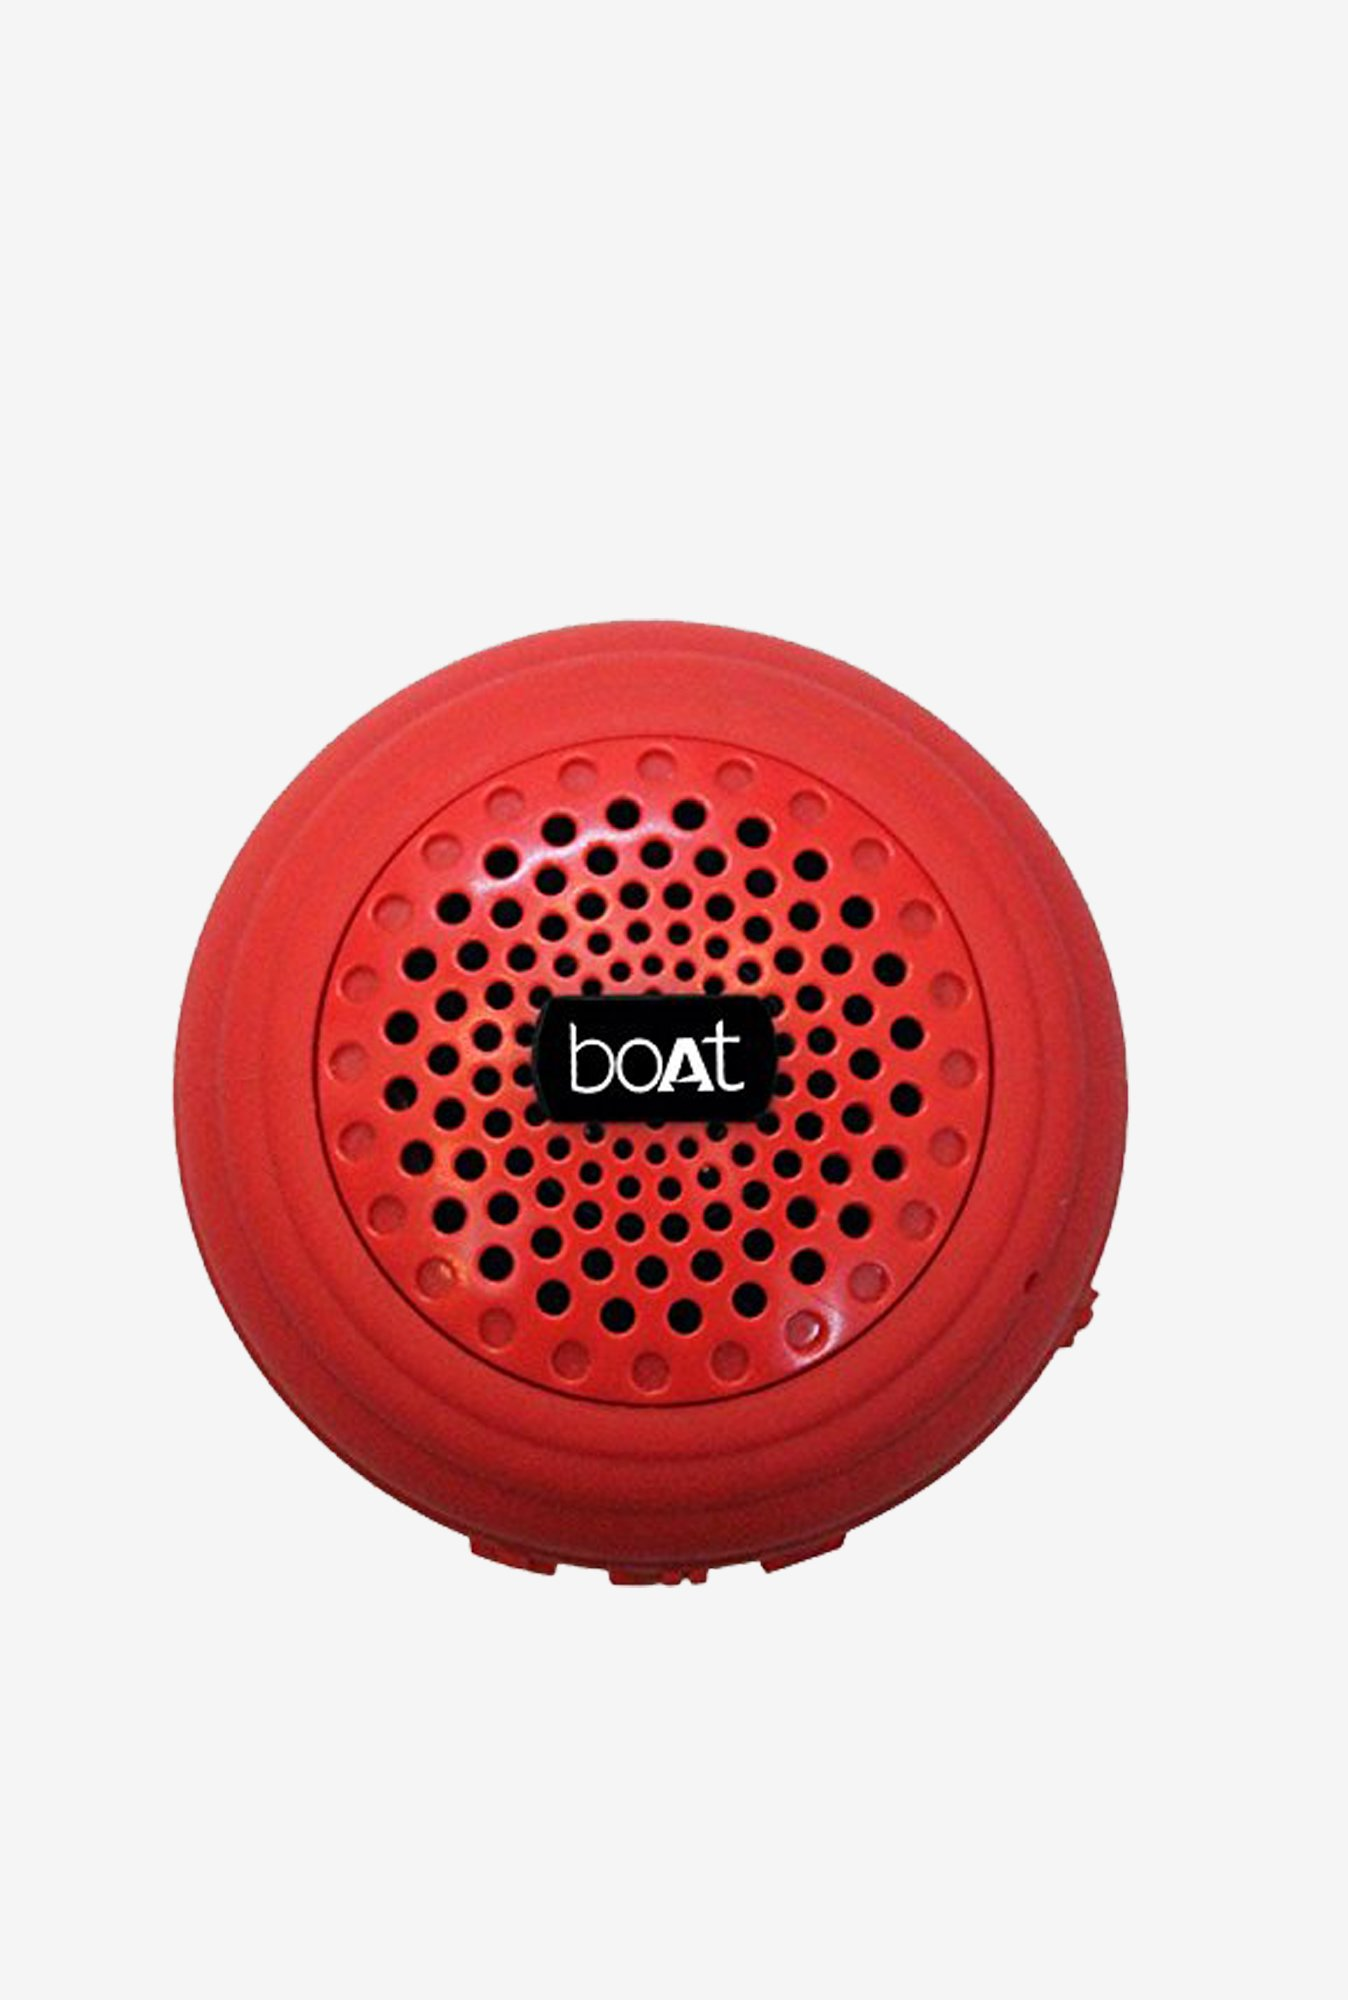 Boat Dynamite BT 100 Portable Bluetooth Speakers (Red)